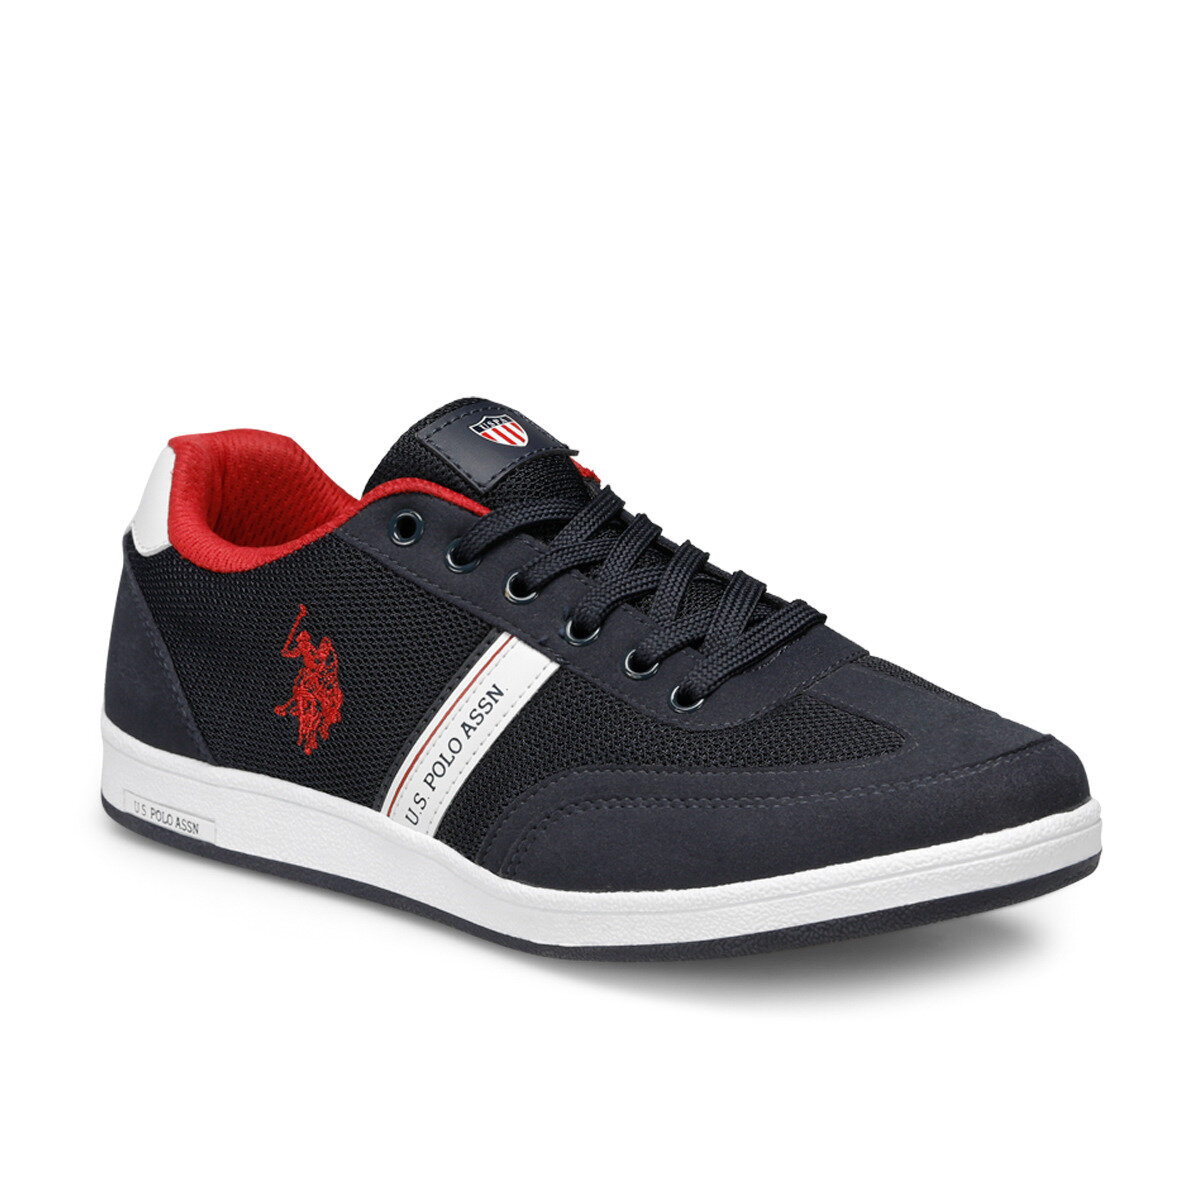 FLO Navy Blue Men Sneaker Shoes 2020 New Casual Shoes Men Leather Flat Shoes Lace-up Low Top Sneakers Shoes Men Tenis Masculino U.S. POLO ASSN. KARES